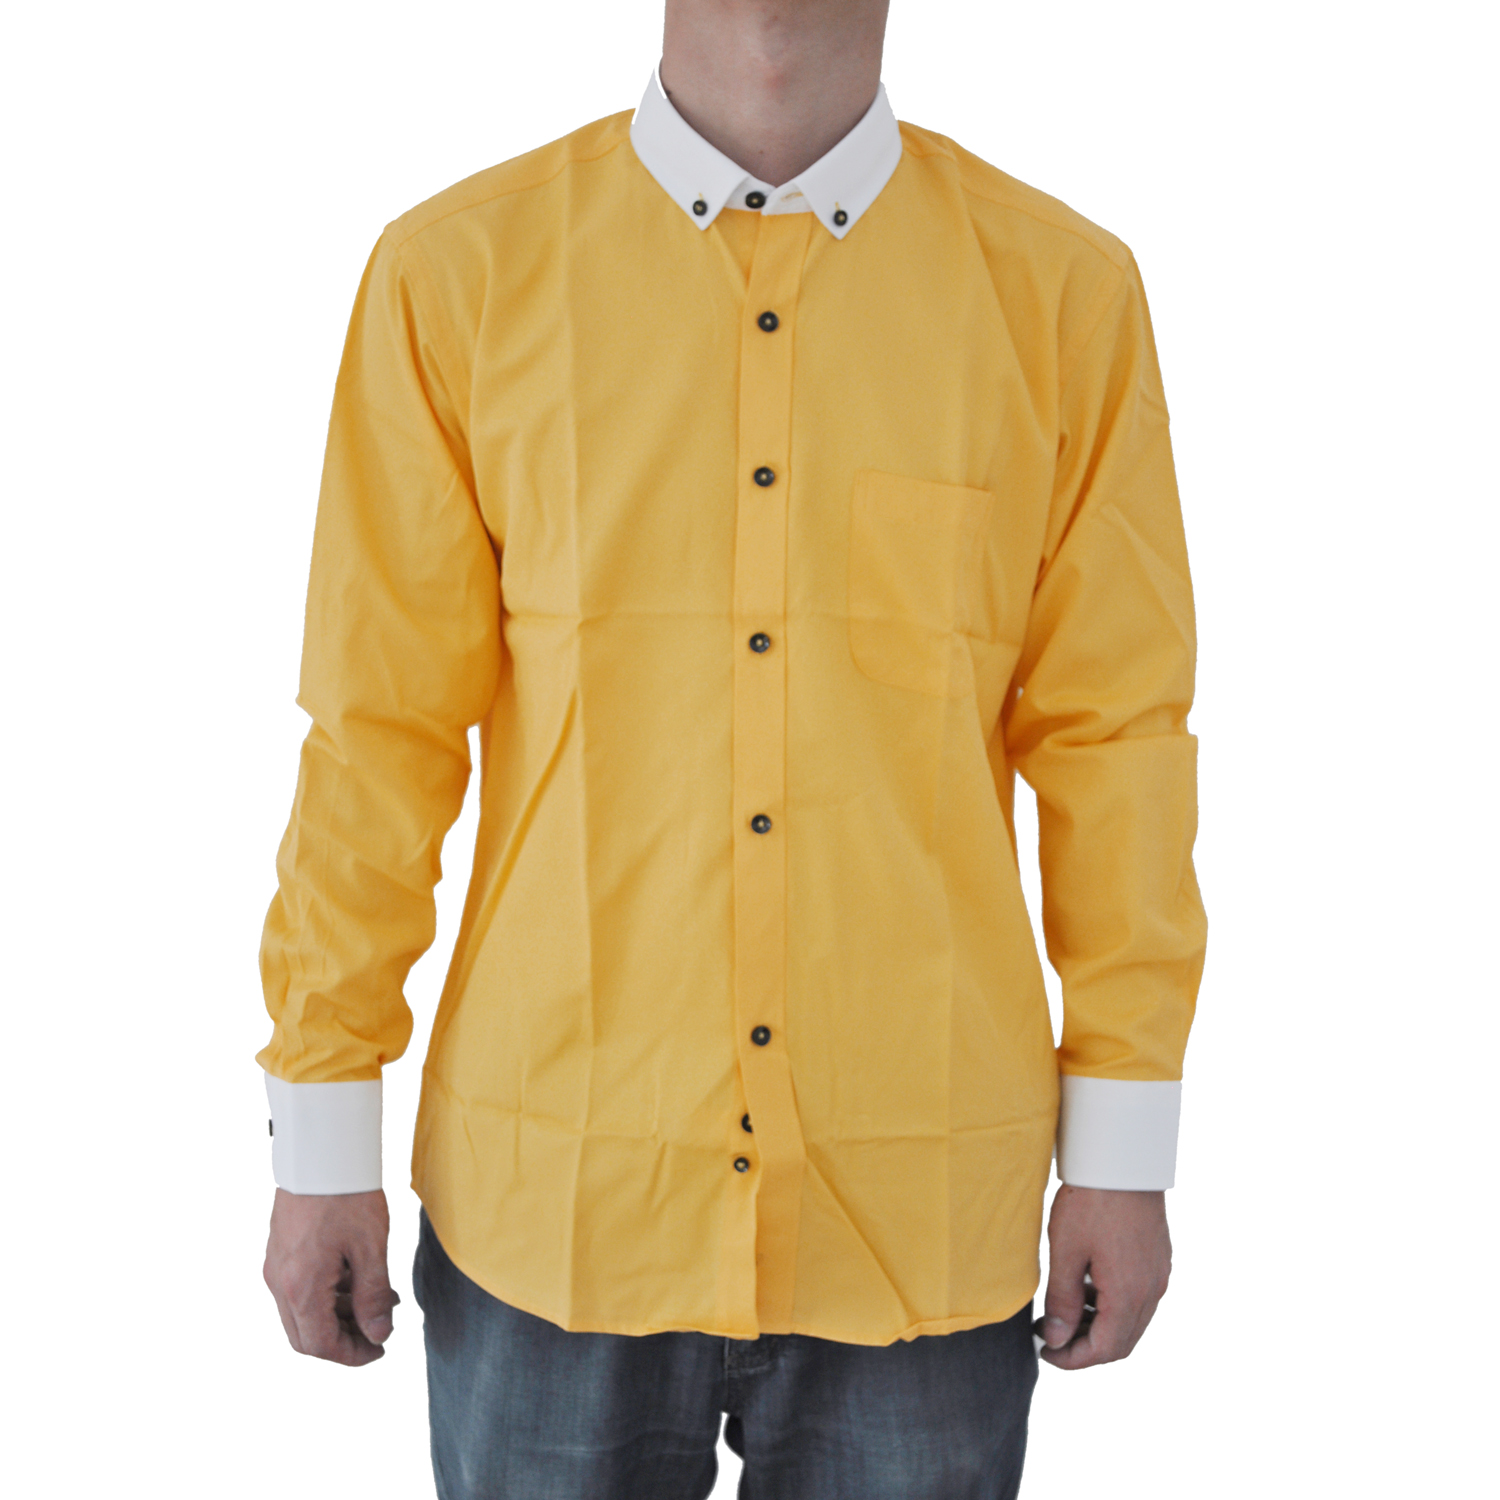 67638b115a98 2017 NEW Men Shirts Solid Color Long Sleeve Man Dress Shirt Cotton Slim  White Collar New Casual Social Shirt 8201#-in Dress Shirts from Men's  Clothing on ...